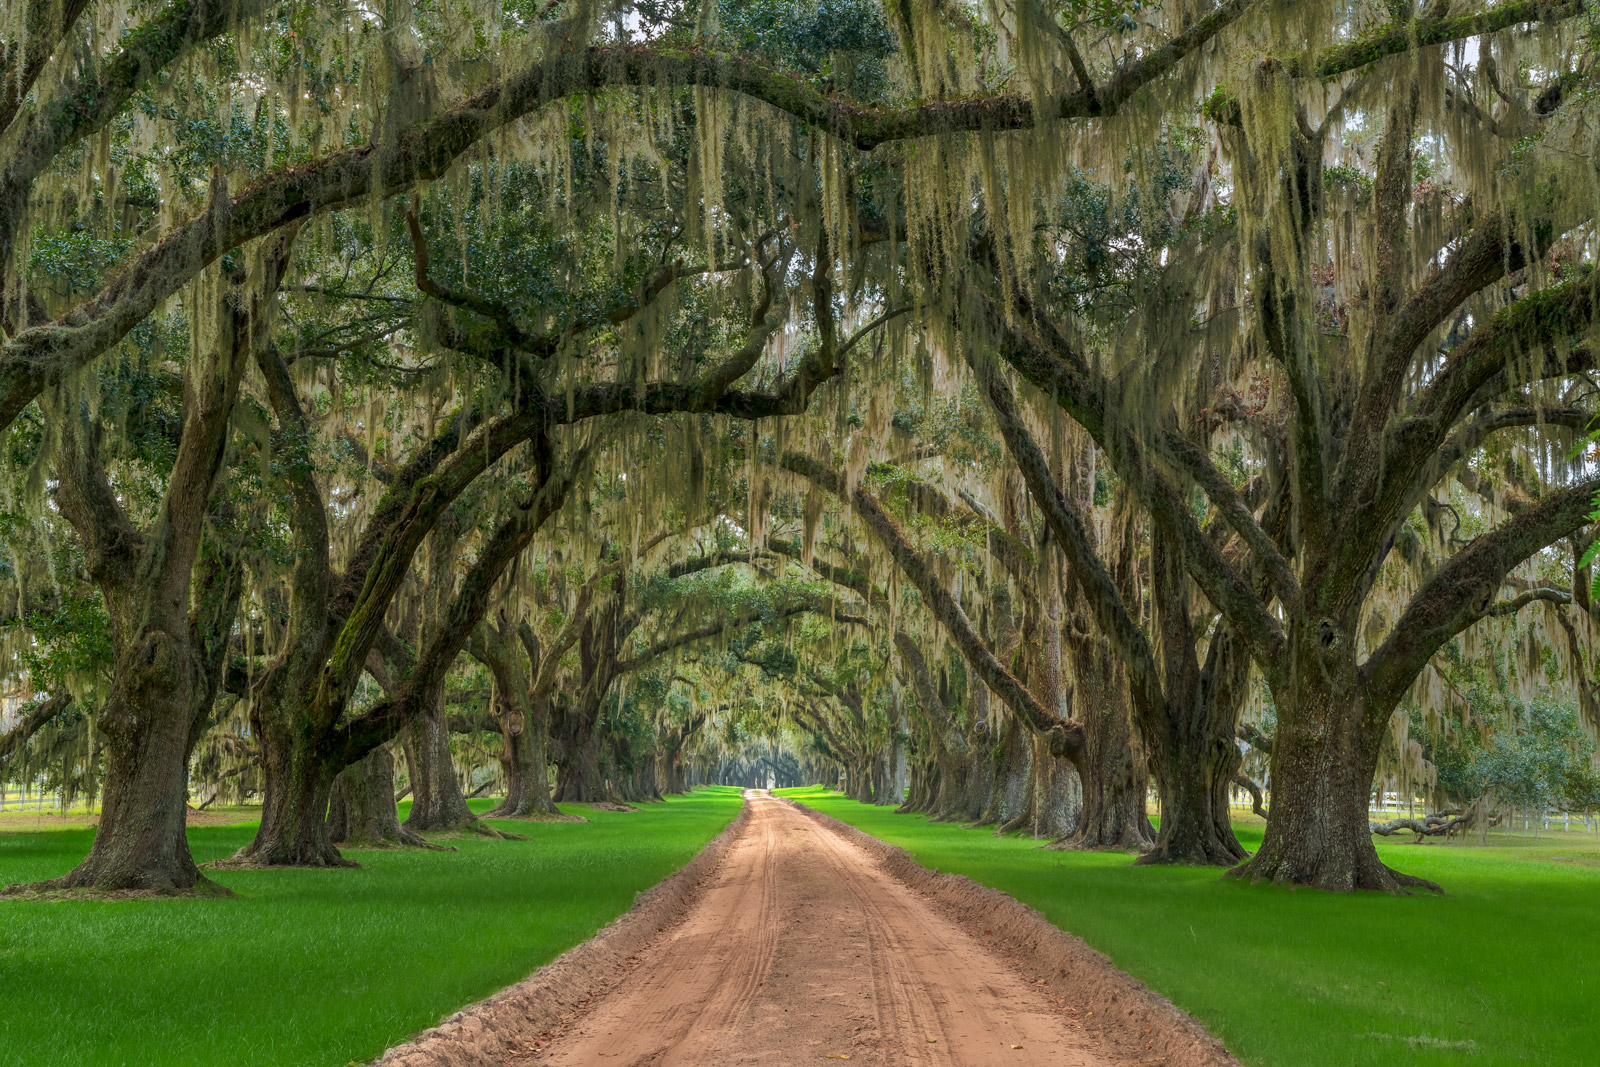 South Carolina, Tomotley, Plantation, Oak, Tree